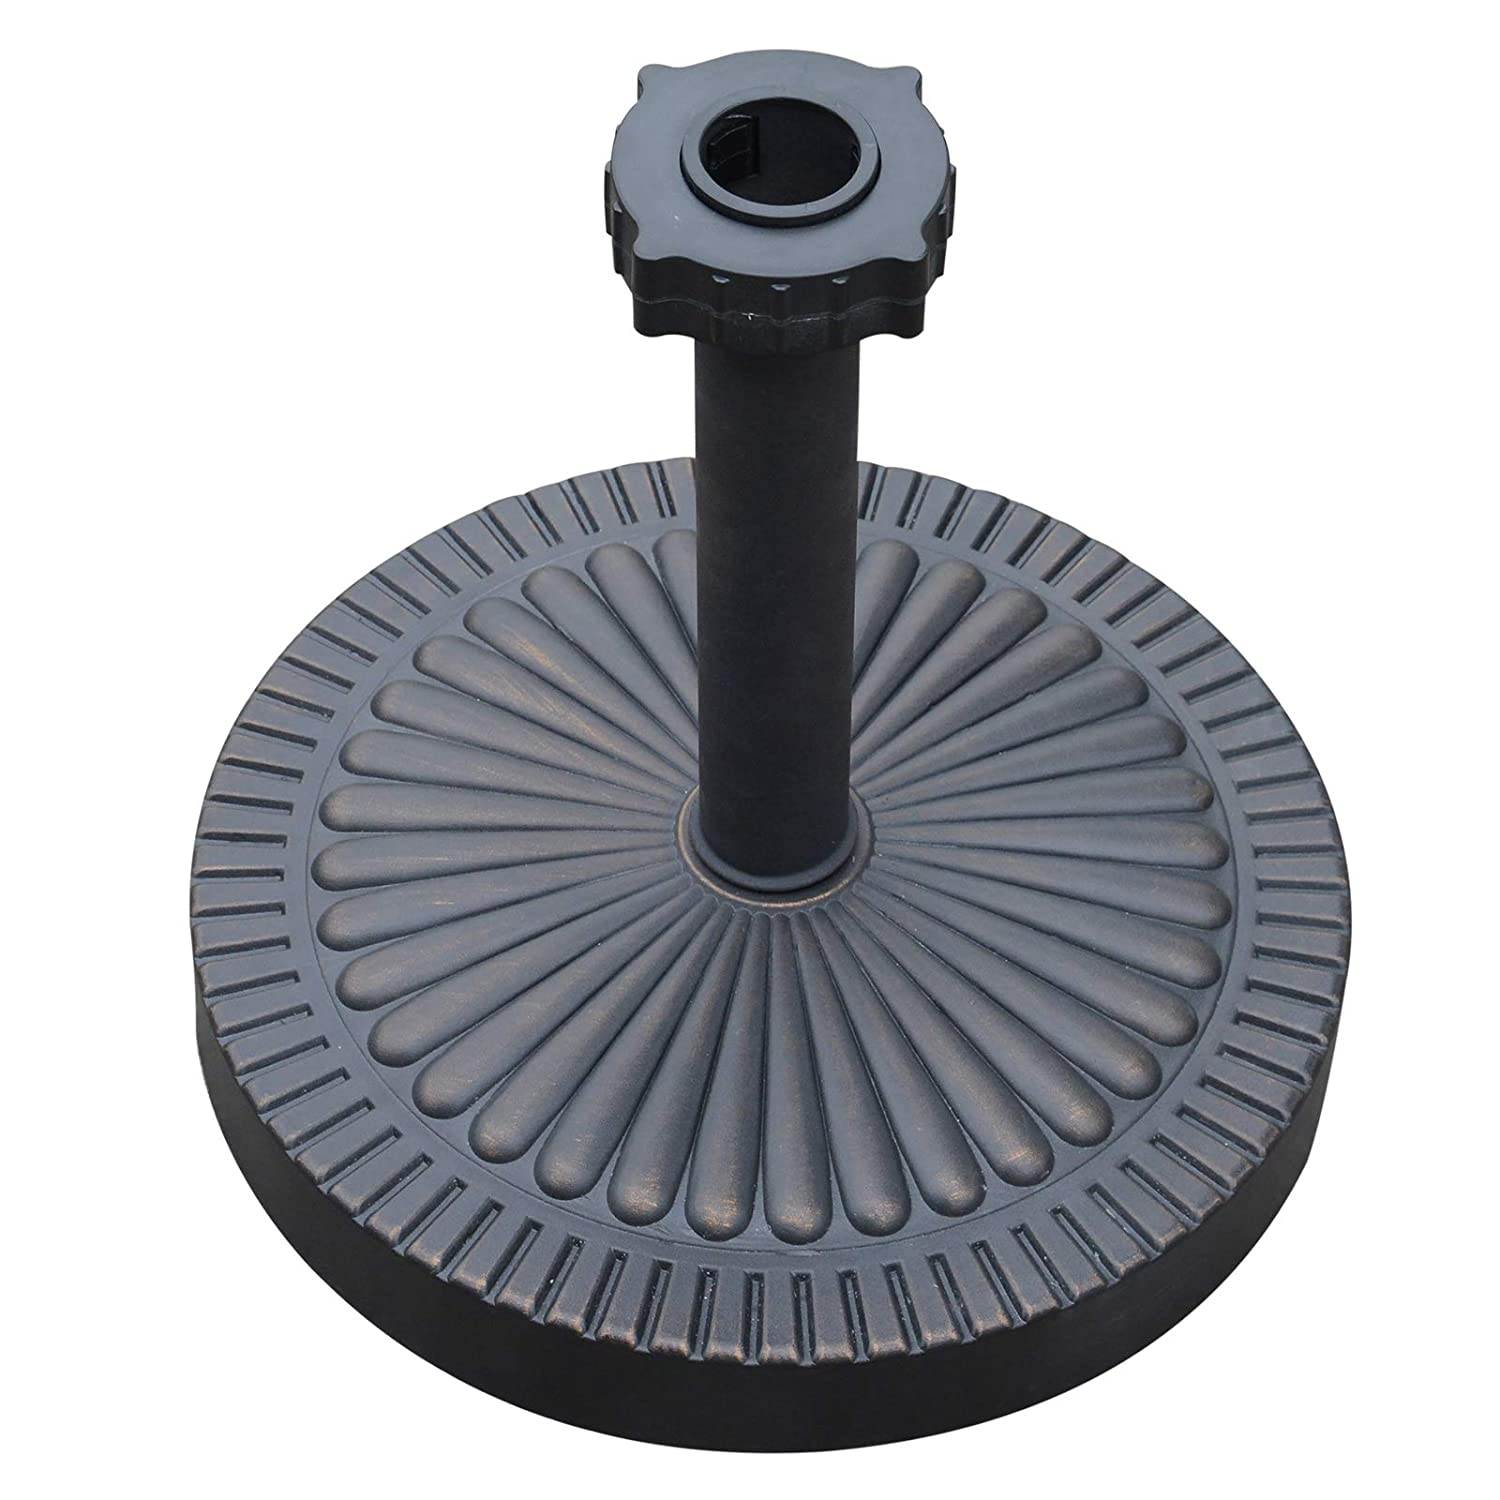 Outsunny Decorative Round Cement Weighted Sun Shade Poolside Patio Umbrella Stand